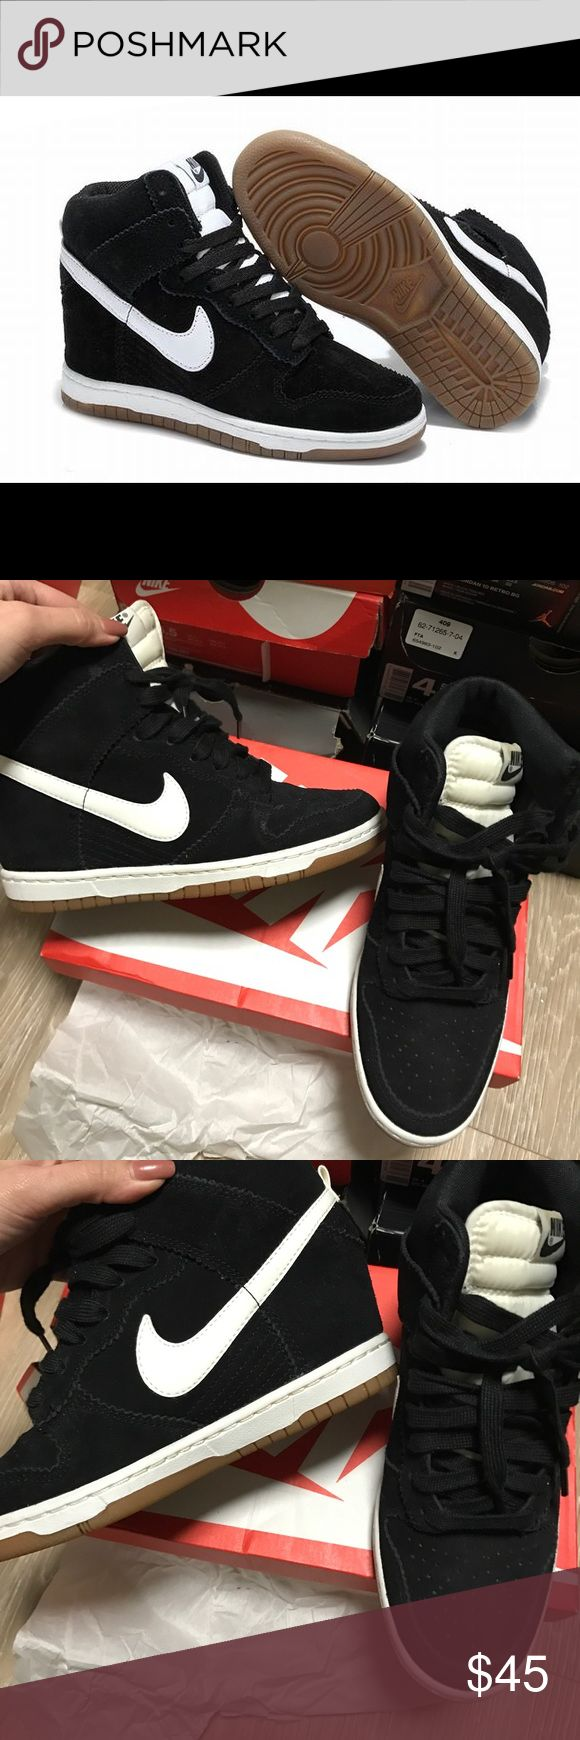 Nike sky hi gum soles 6.5 perfect condition Nike Shoes Sneakers